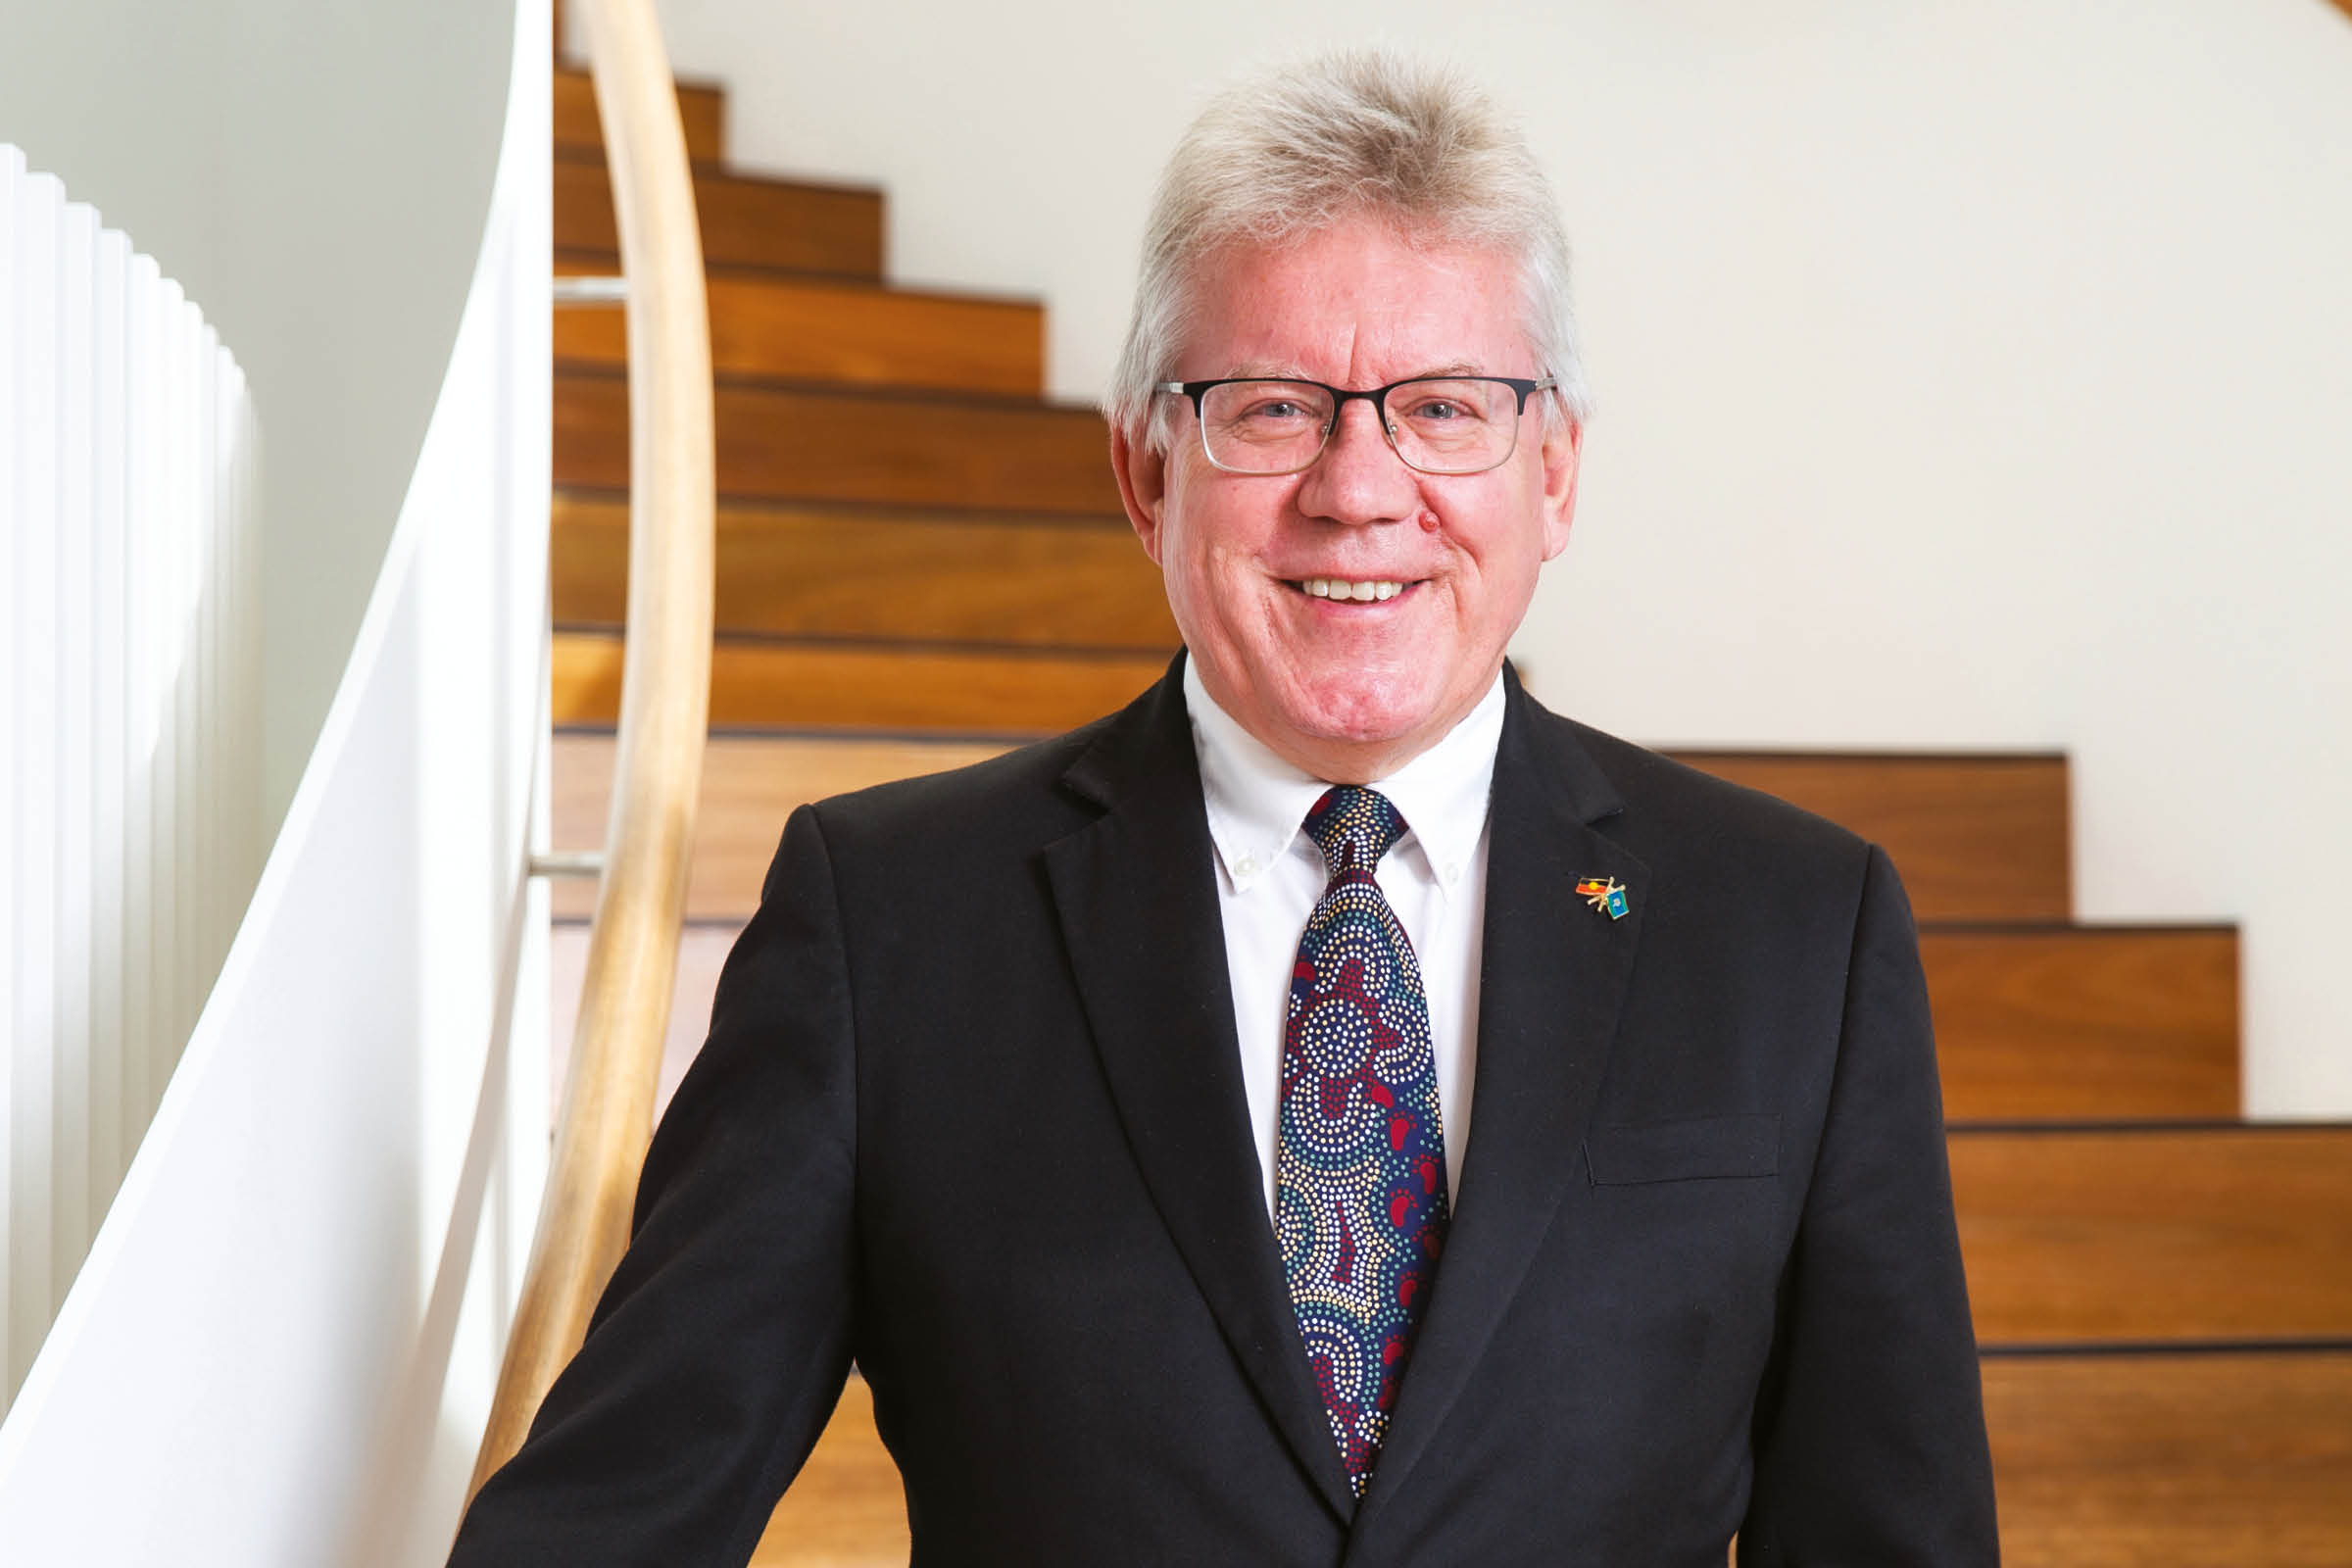 Neil Scales, Director General of Queensland Department of Transport and Main Roads